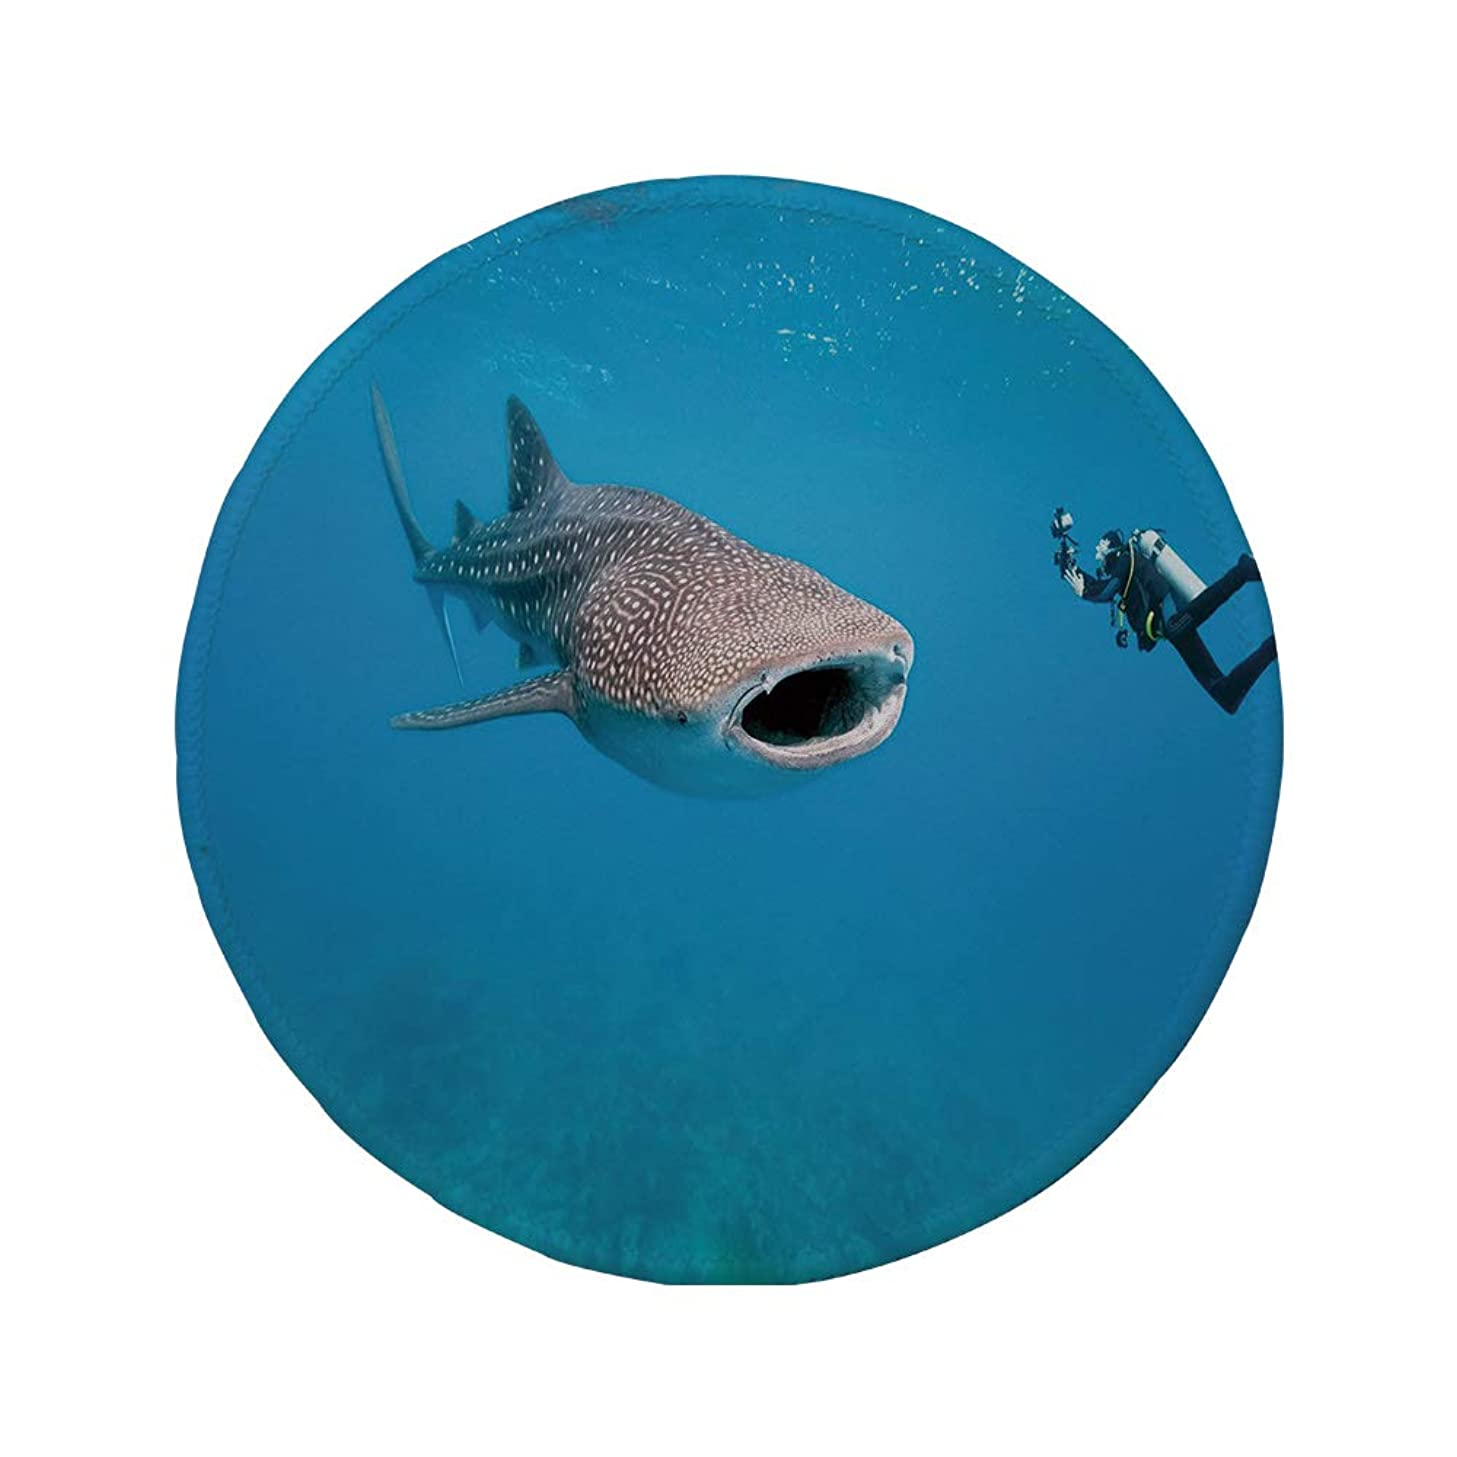 Non-Slip Rubber Round Mouse Pad,Shark,Giant Whale Shark and Underwater Photographer in Wildlife Diving Image,Violet Blue Light Grey,11.8